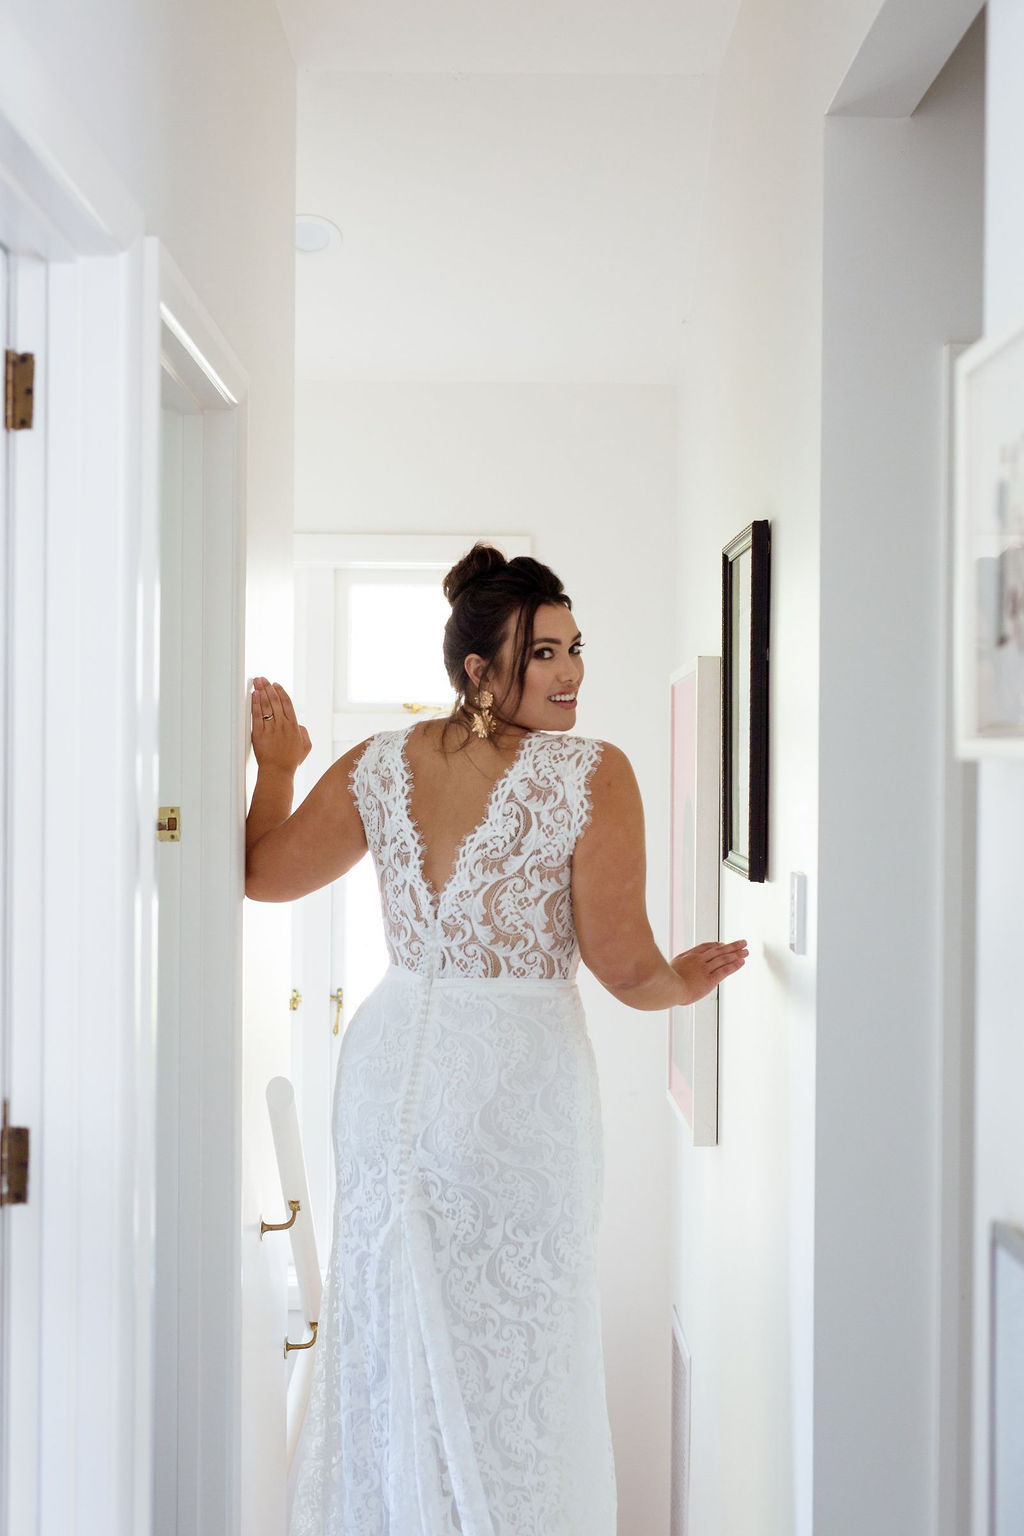 Daisy by Katie Yeung featured on the LOVE FIND CO. Bridal Directory